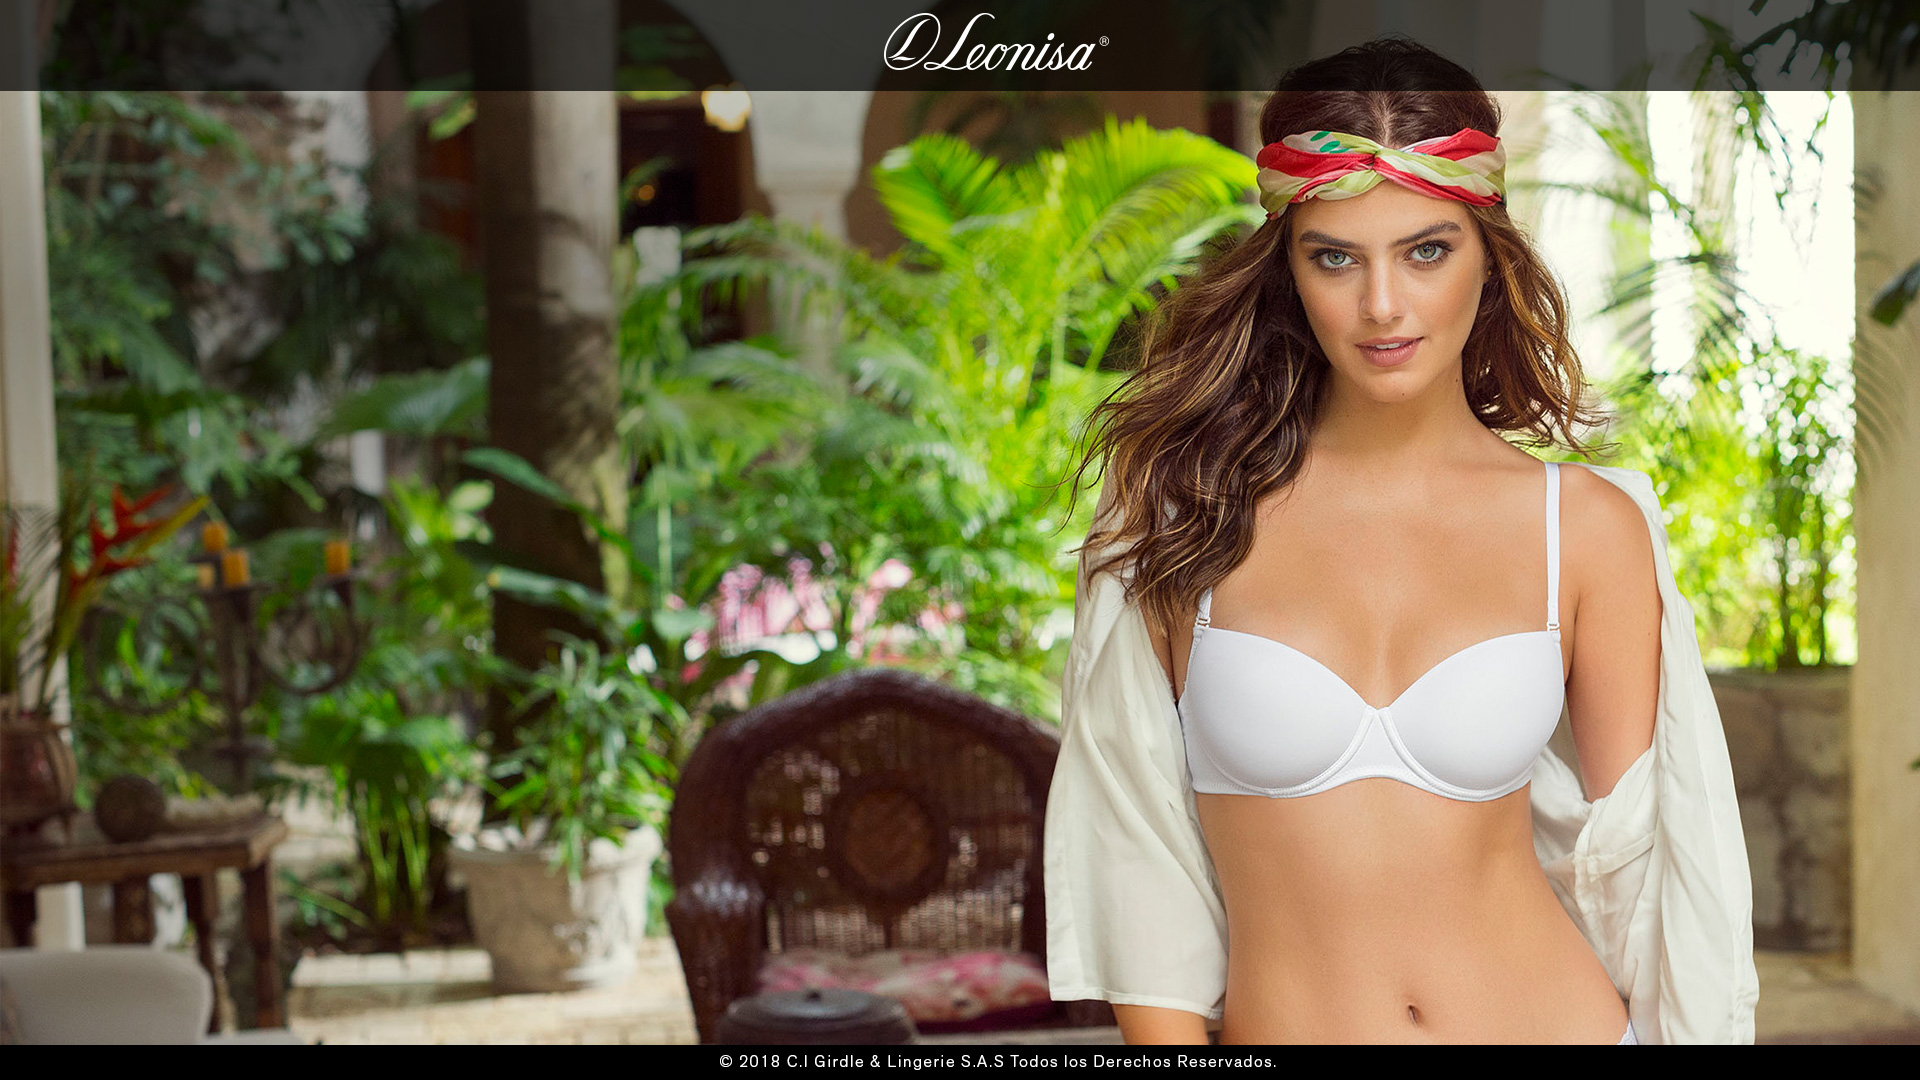 Beautiful Leonisa Bras & Sexy Lingerie Fashion Modeling Campaigns.